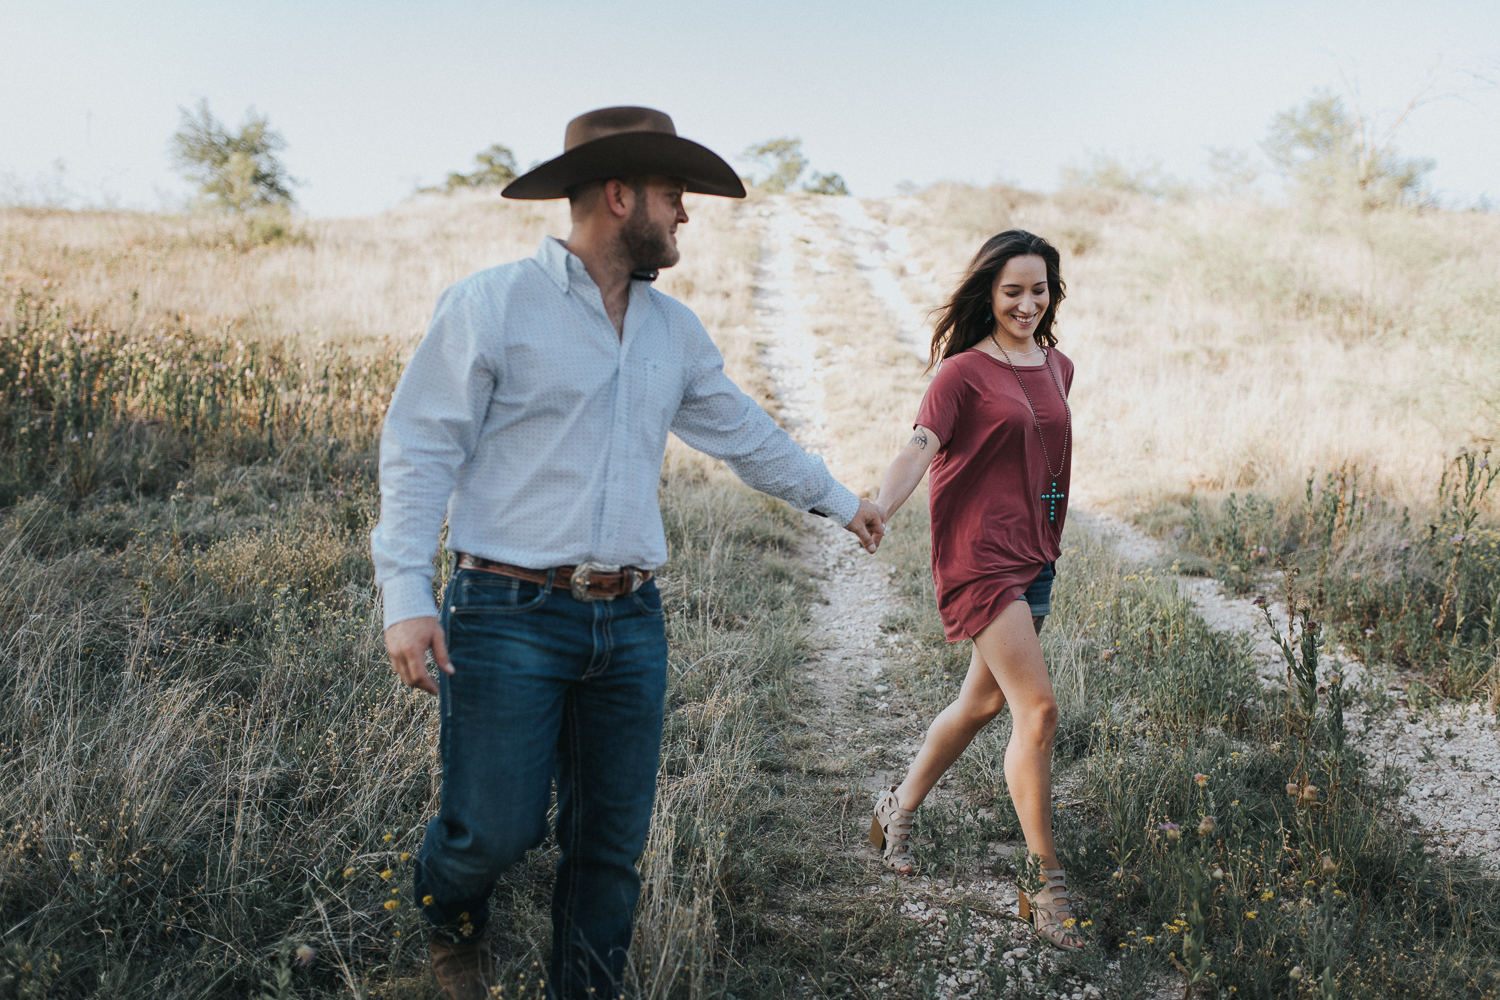 laura-beck-photography-best-lubbock-texas-couples-love-lifestyle-engagement-wedding-anniversary-portraits-68.jpg